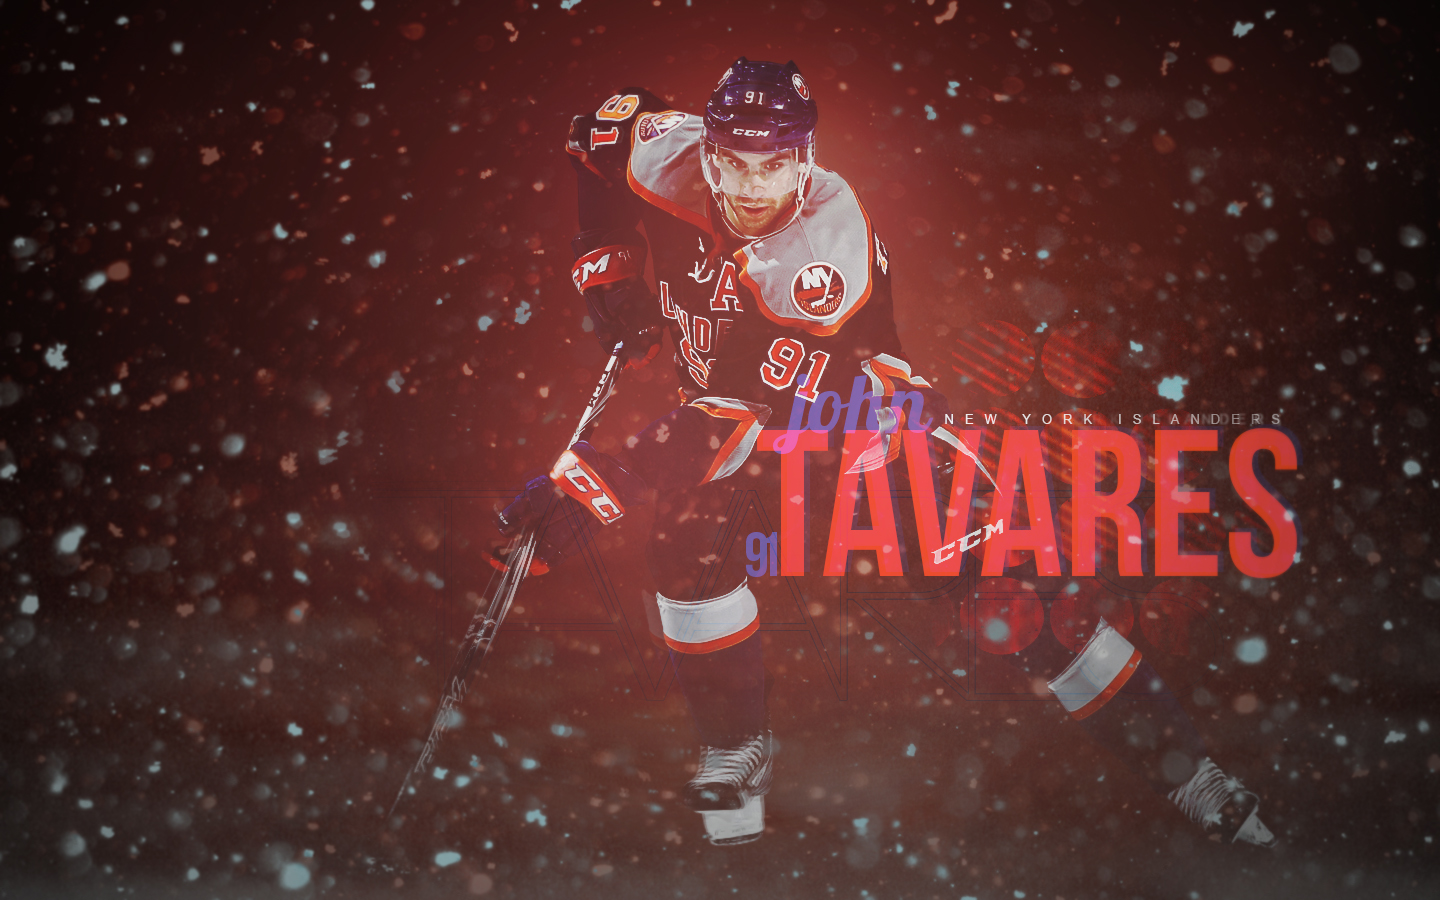 tavares wallpaper new york islanders by motzaburger fan art wallpaper 1440x900